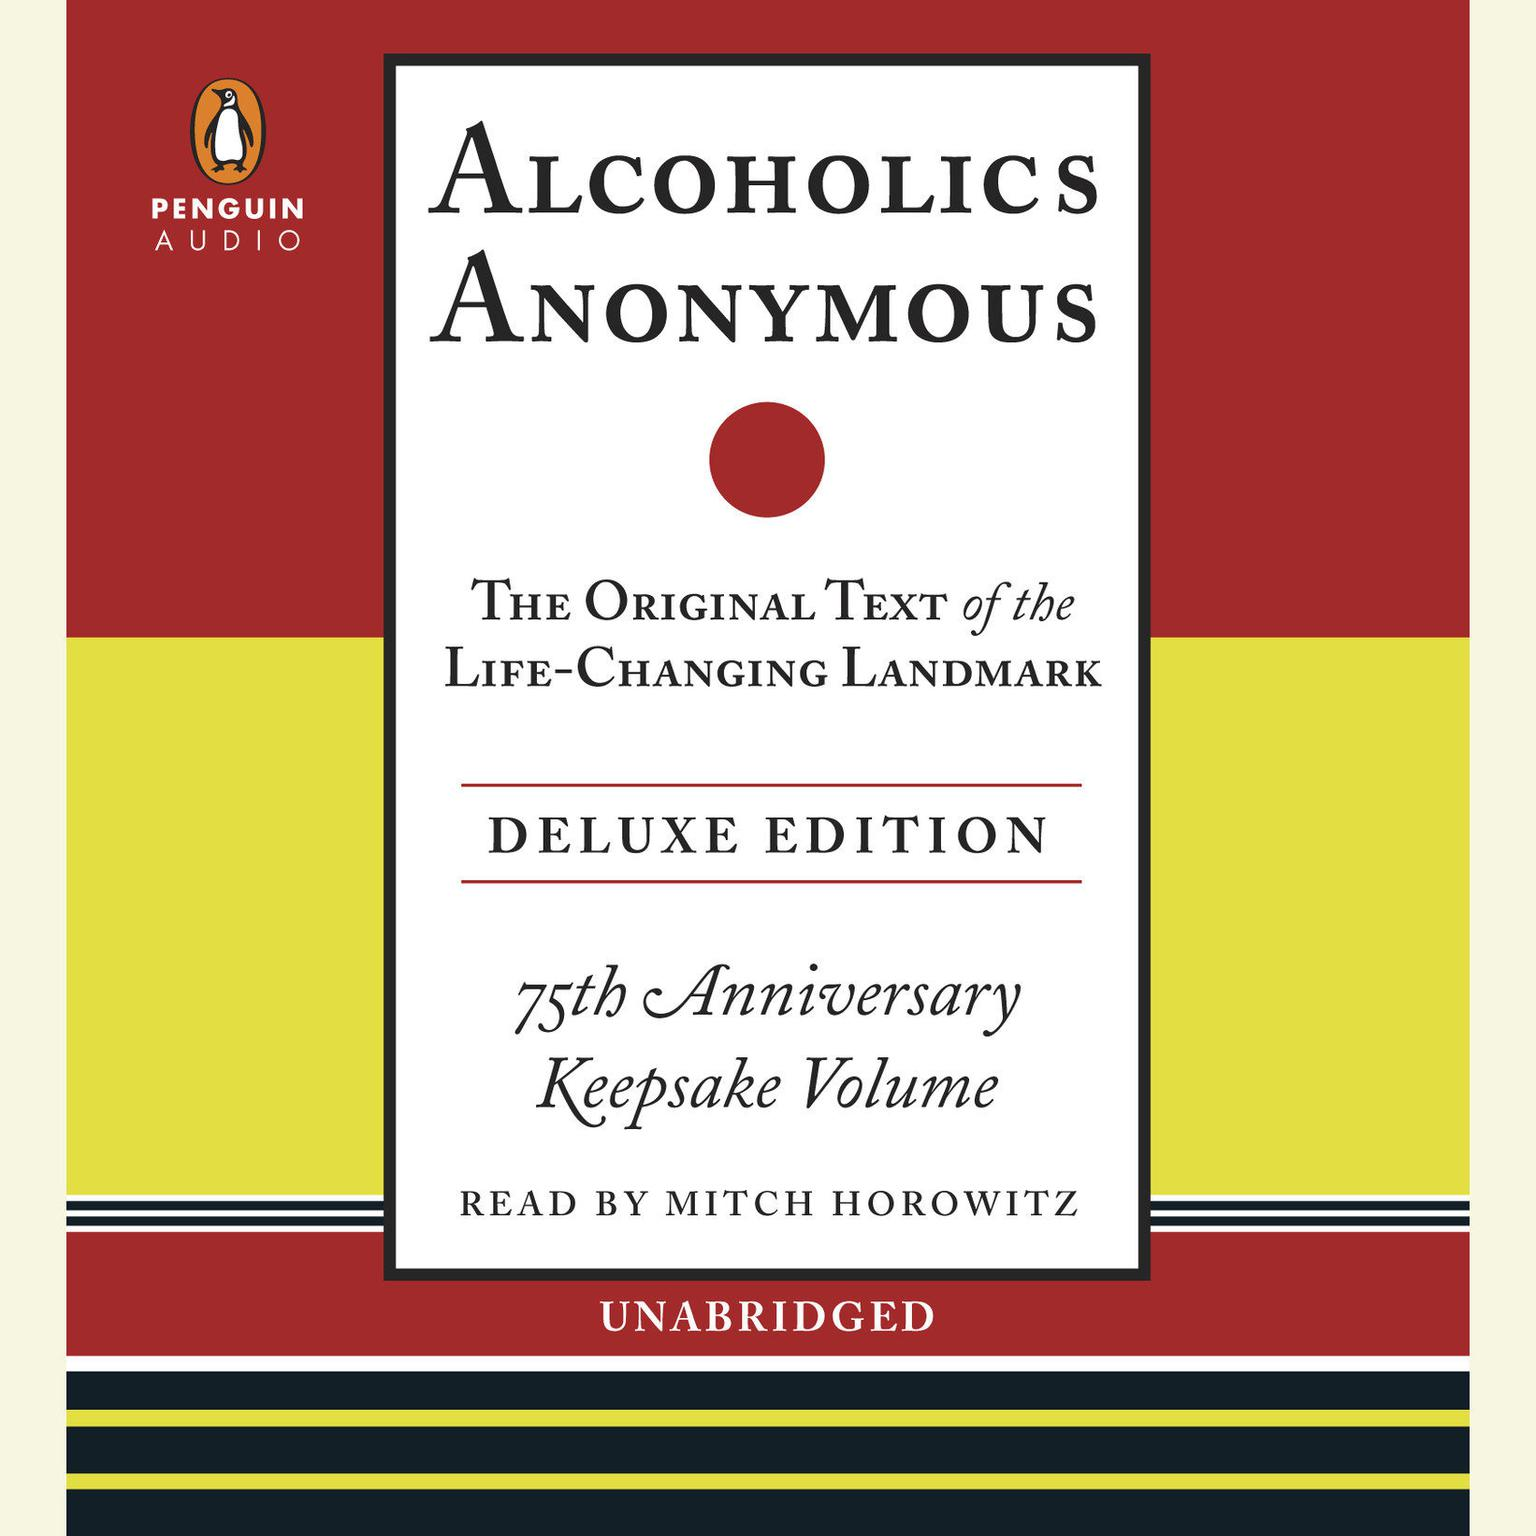 Printable Alcoholics Anonymous Deluxe Edition: The Original Text of the Life-Changing Landmark, Deluxe Edition Audiobook Cover Art